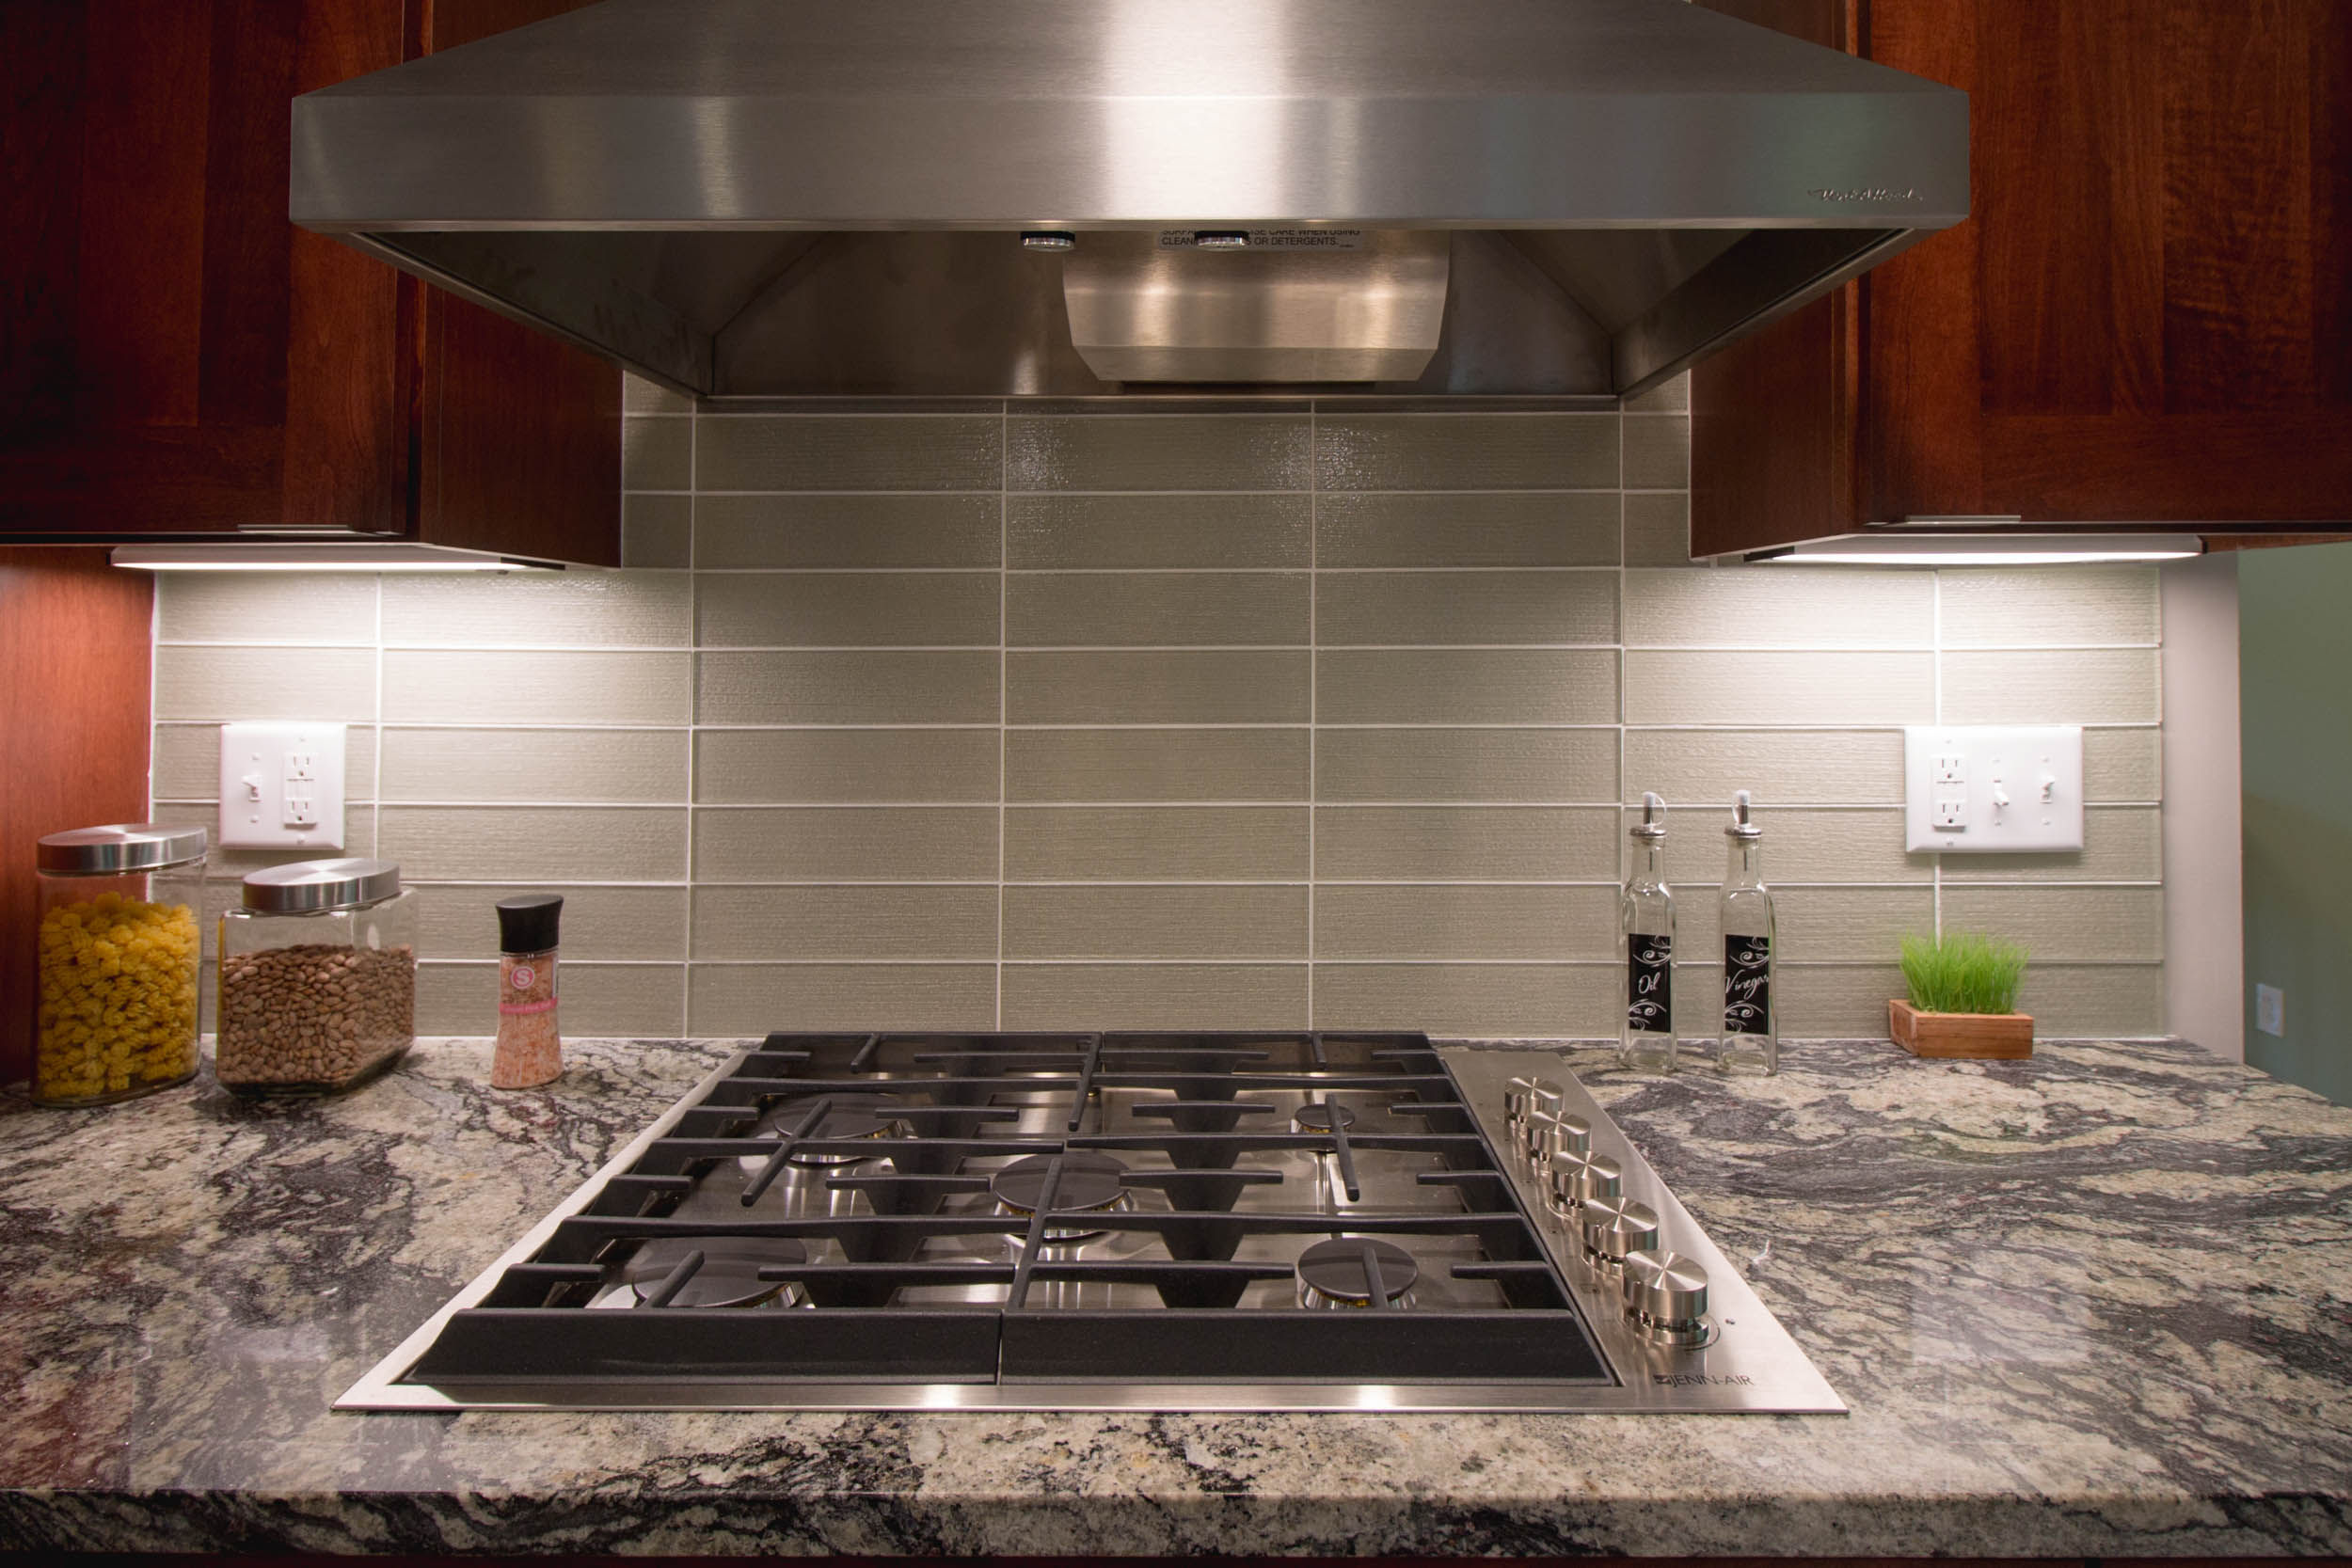 New kitchen appliances for a remodel in Midvale Heights Madison Wisconsin